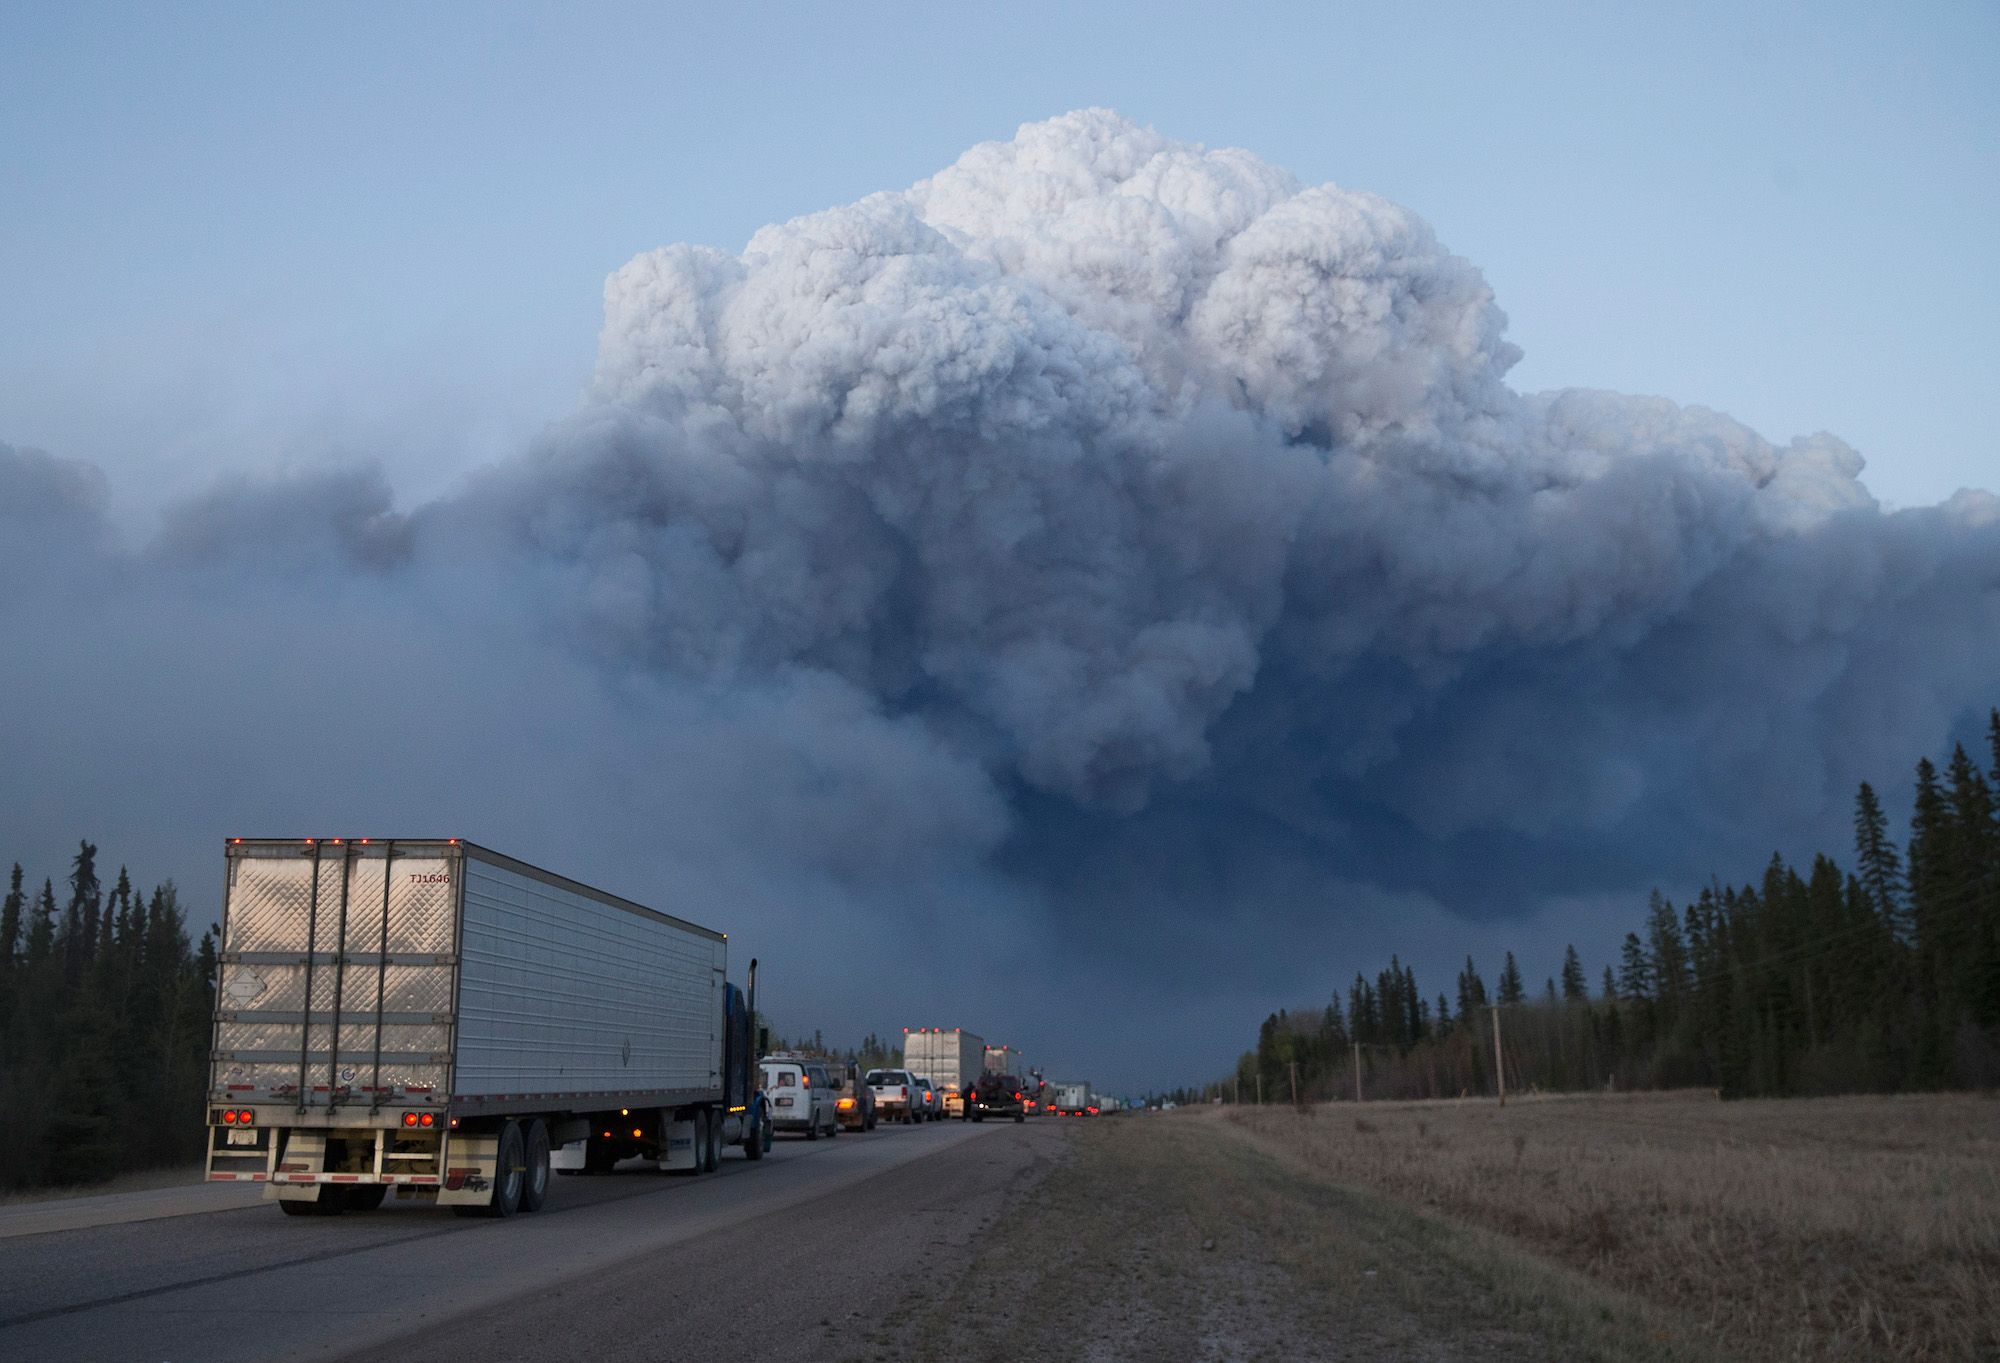 Climate Change Is a Hoax? Ask Canada About the Wildfires.